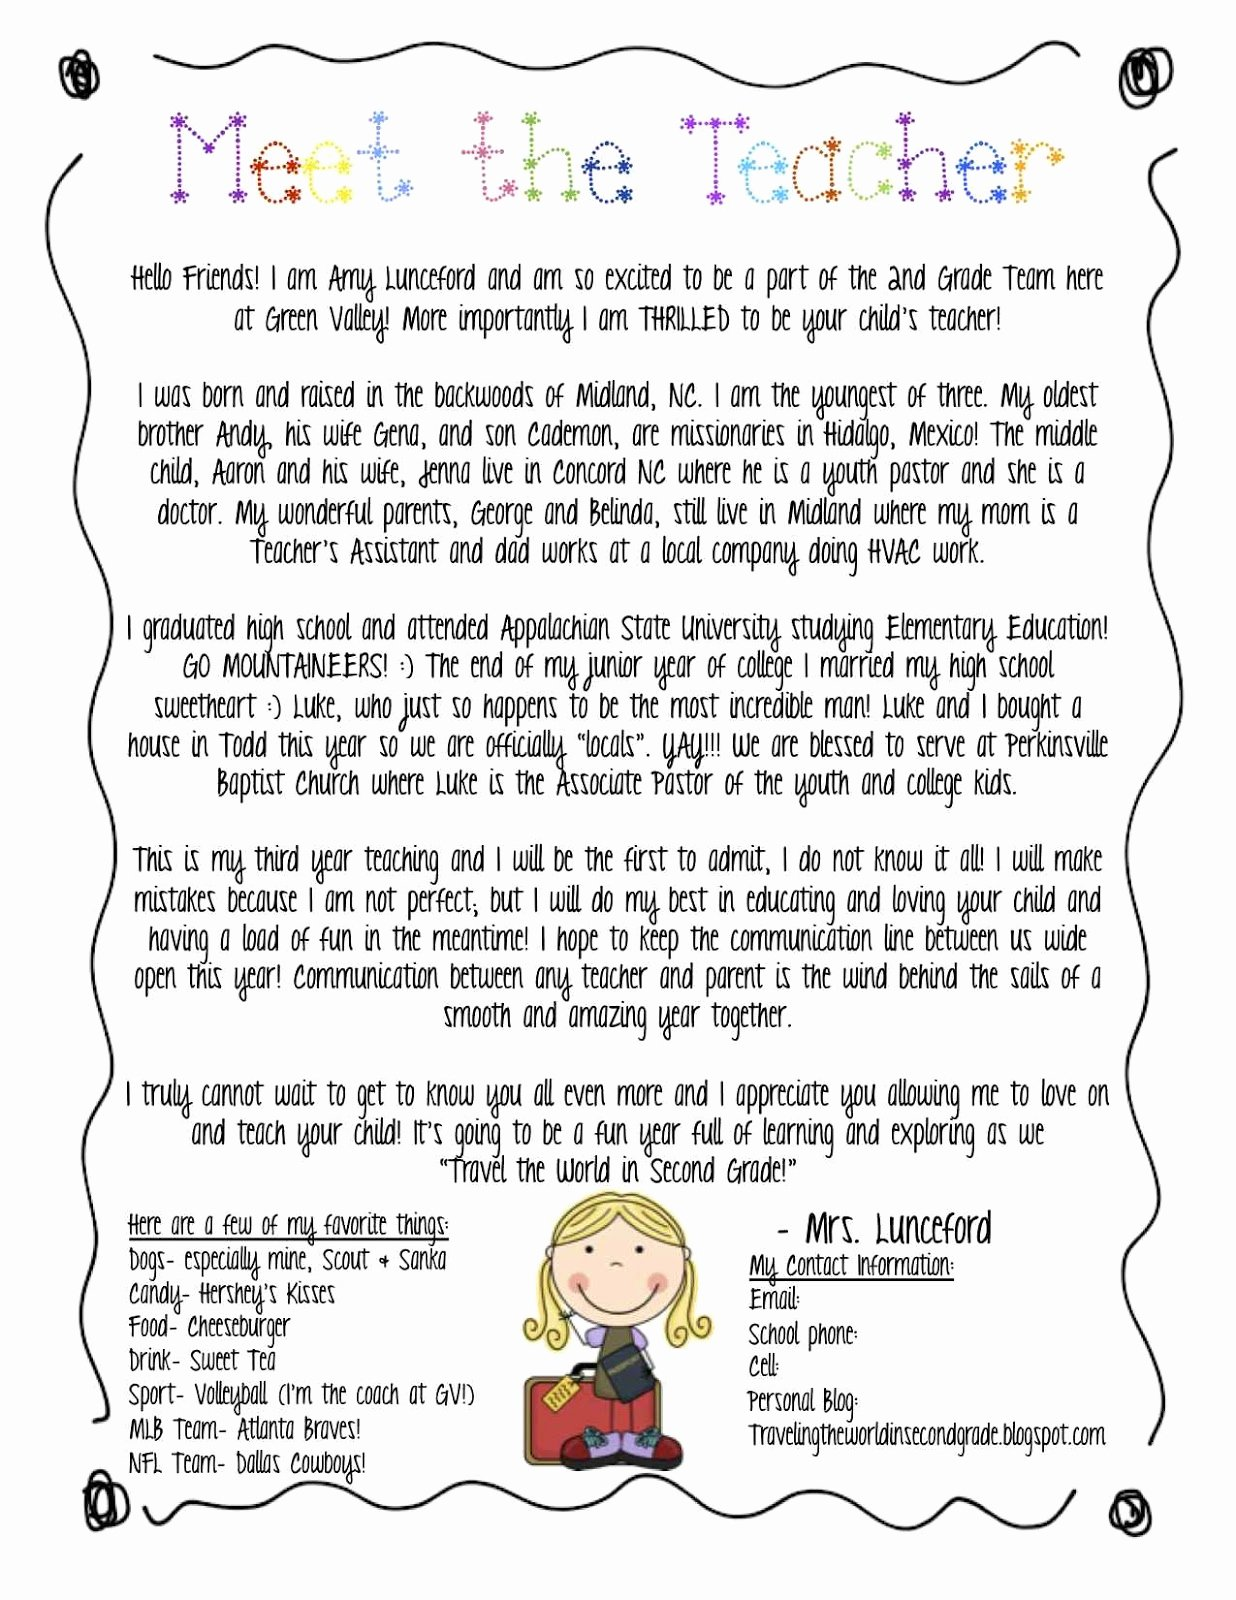 Meet the Teacher Template Awesome Traveling the World In 2nd Grade Back to School forms and